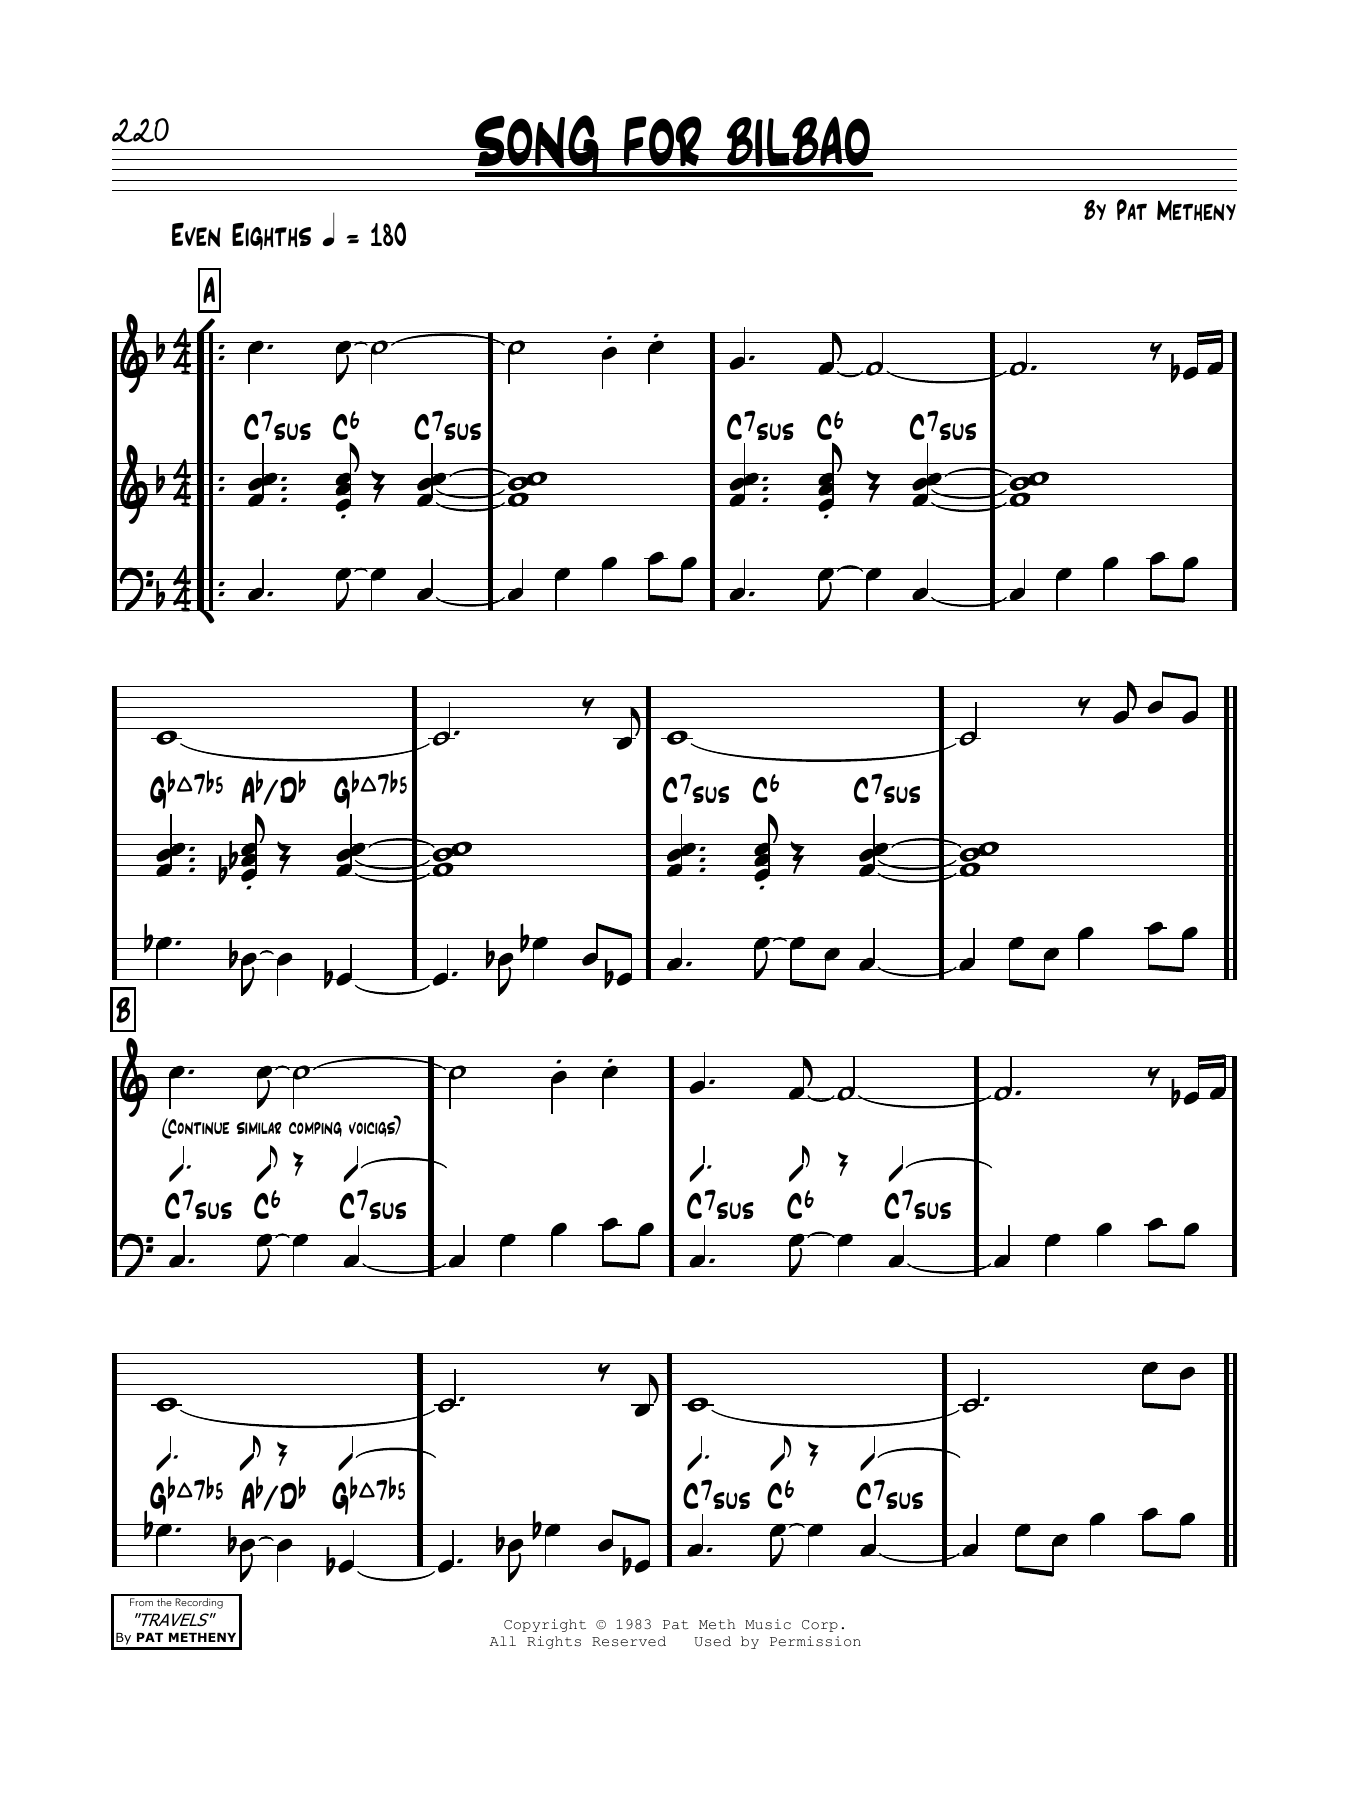 Song For Bilbao Sheet Music